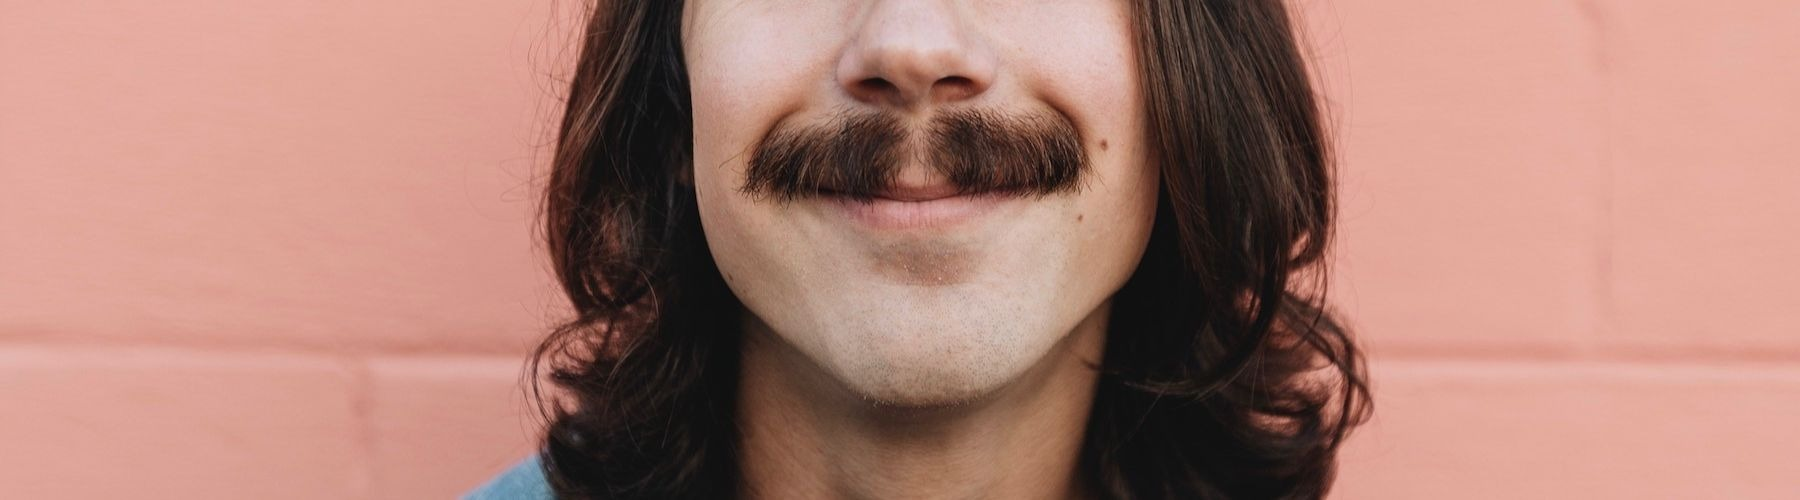 Movember: Prostate Cancer and Heart Disease